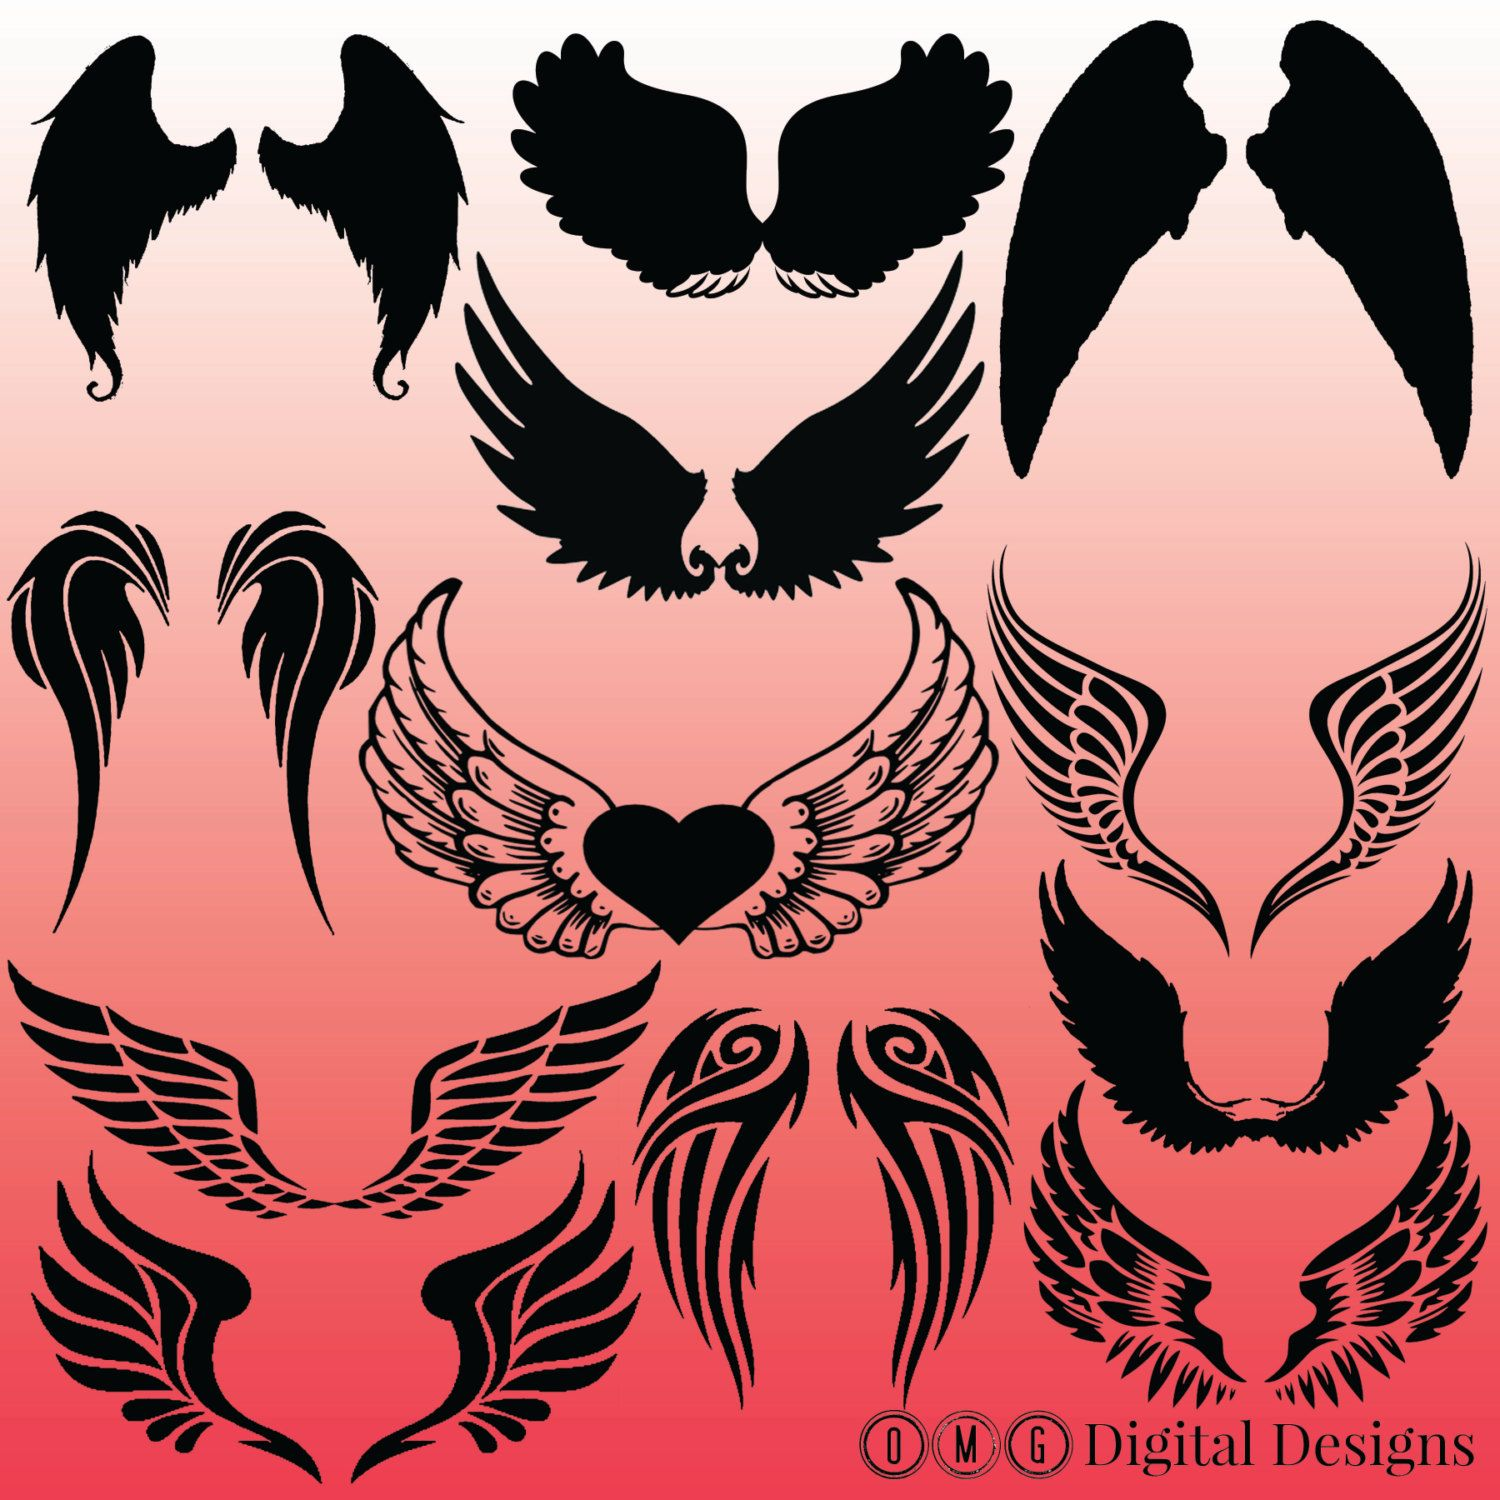 angel wings images. Wing clipart silhouette